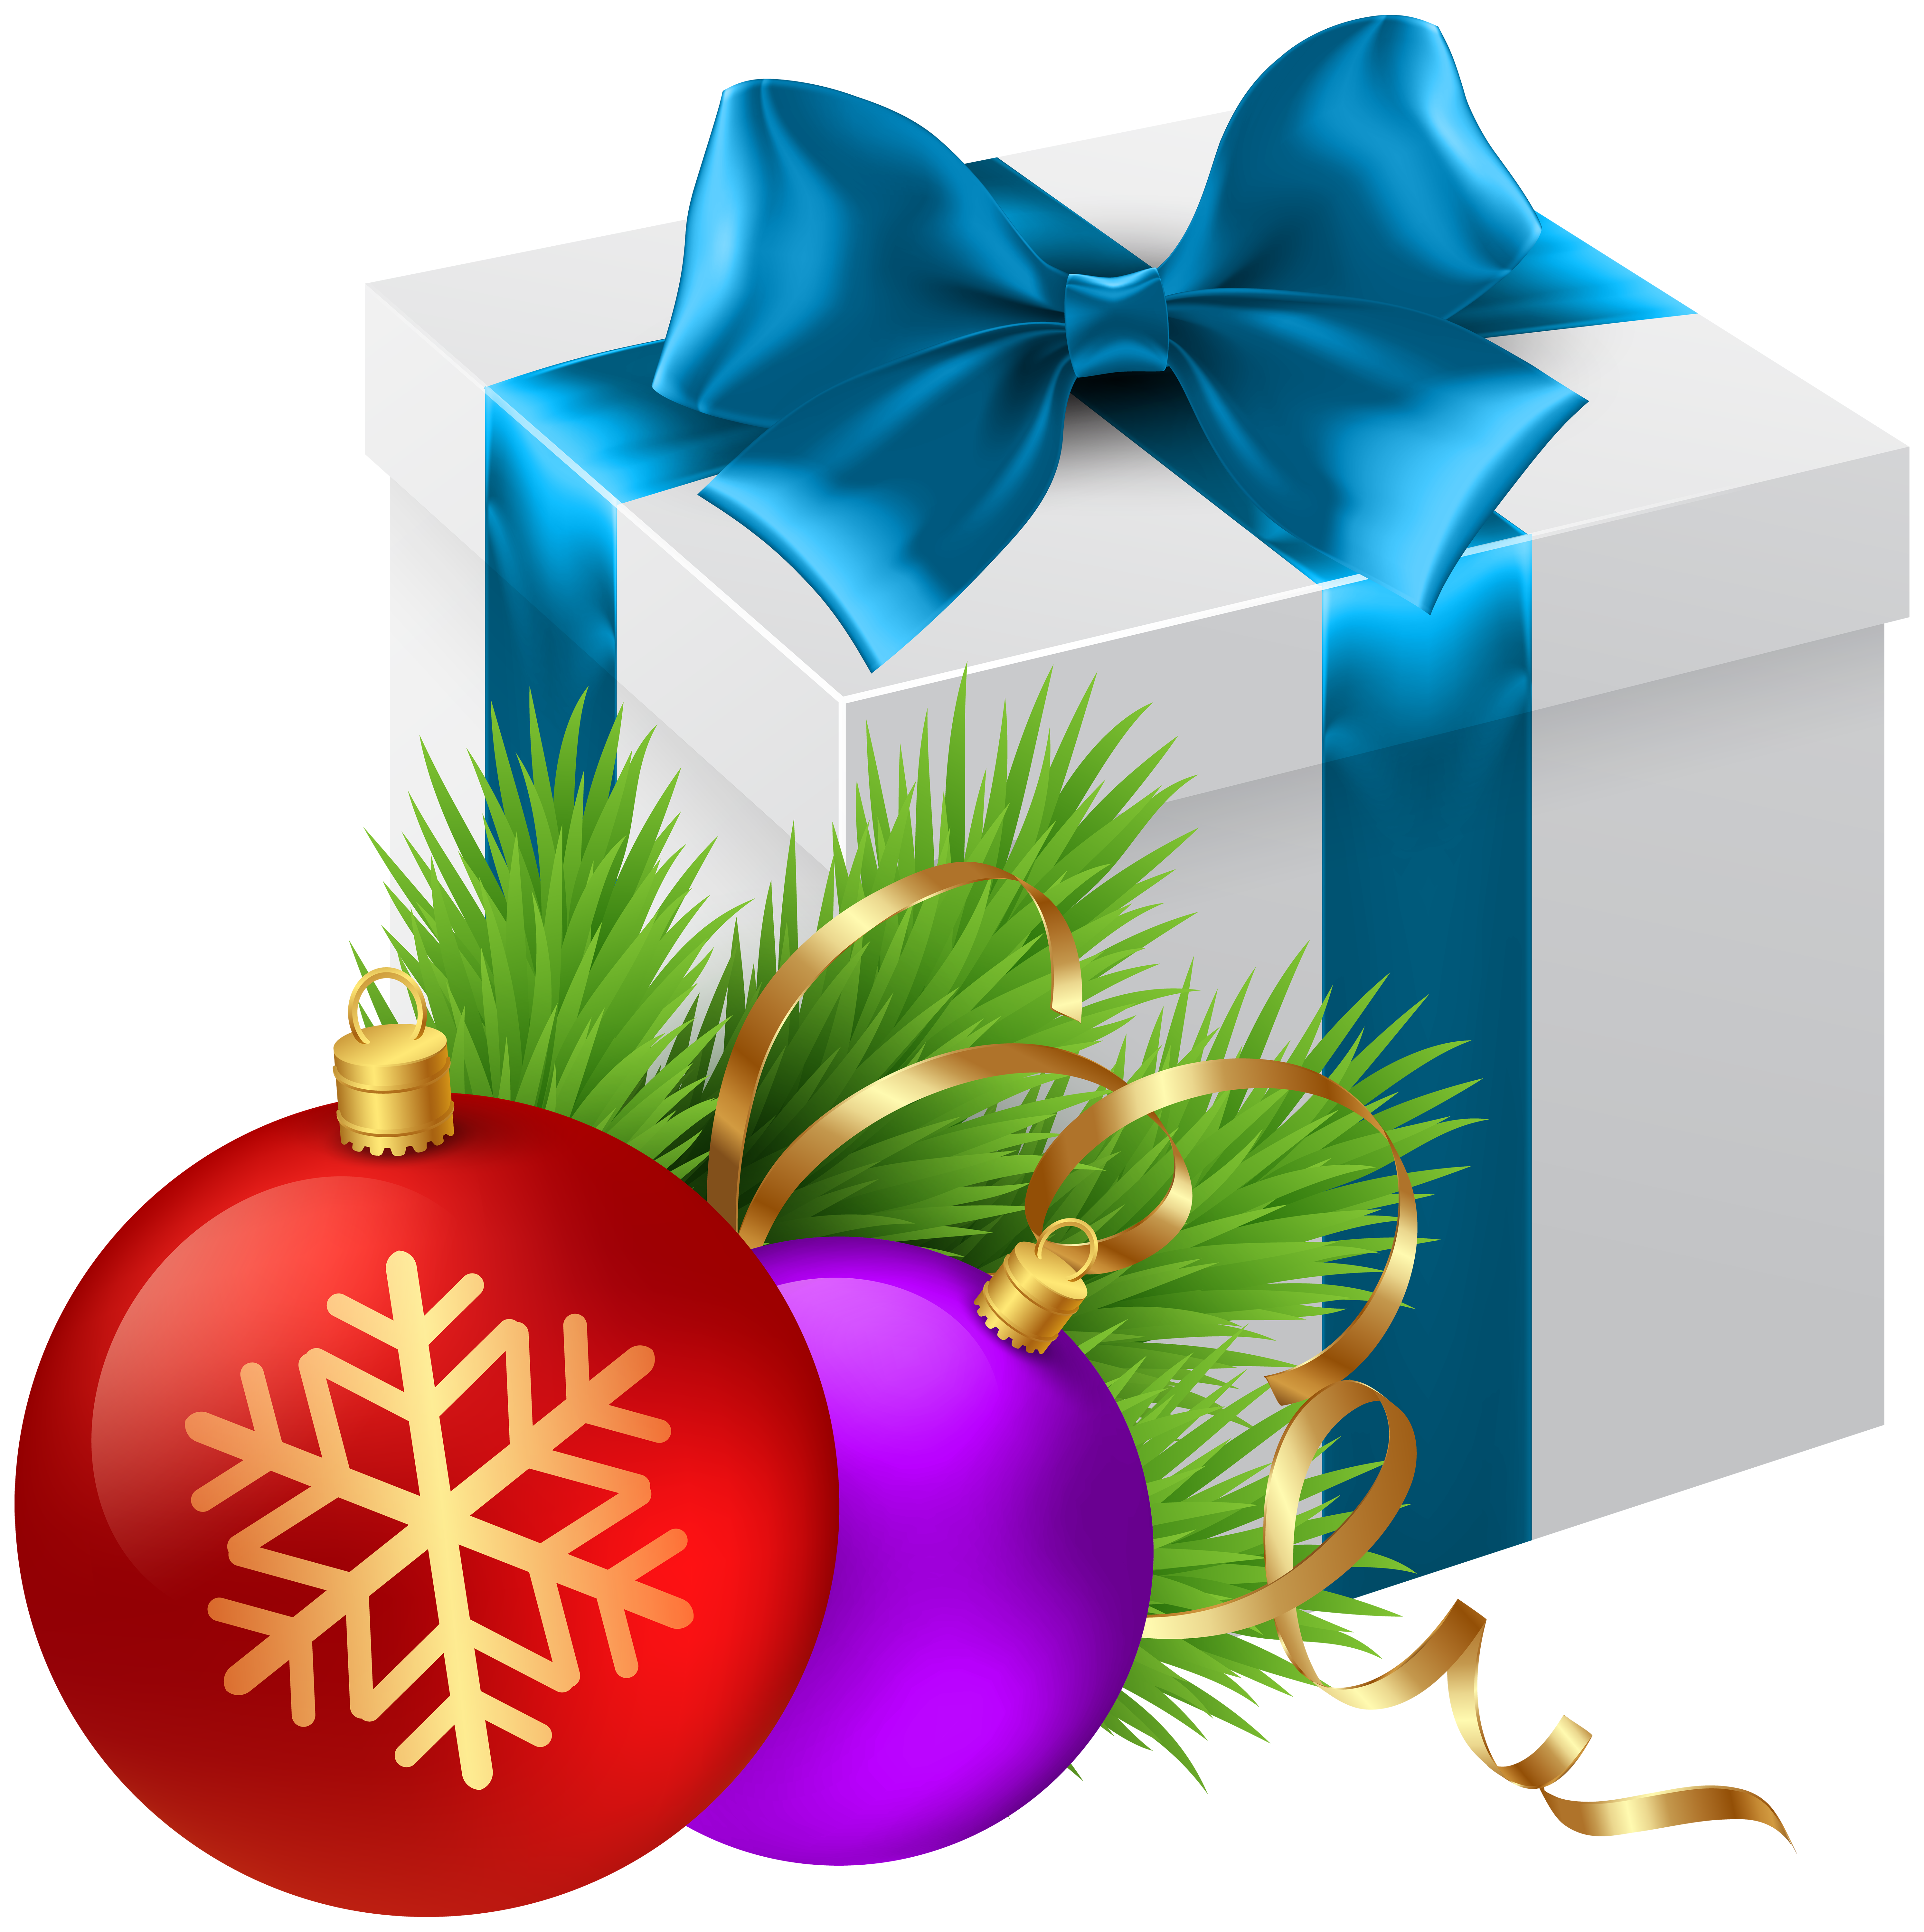 Christmas Gift Transparent PNG Clip Art Image.